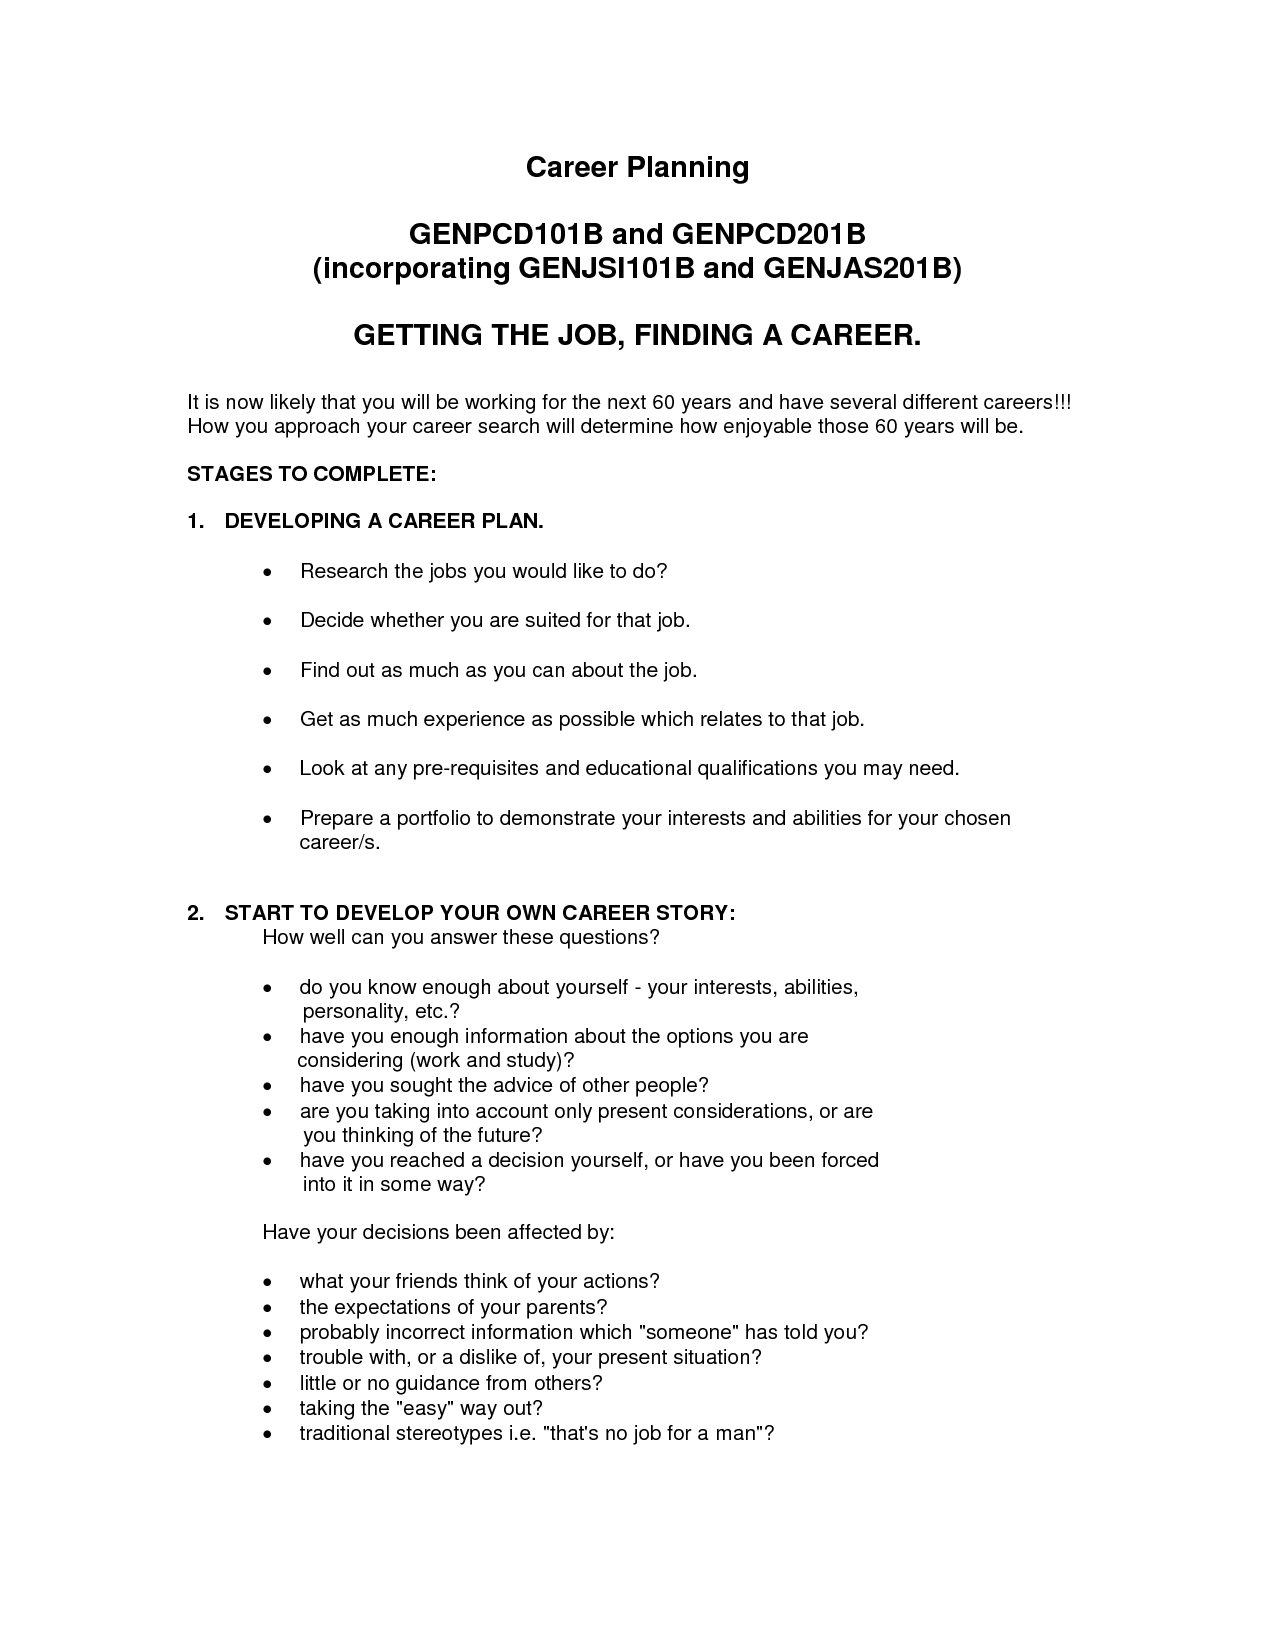 Professional Resume Cover Letter Sample | Resume Cover Letter ...